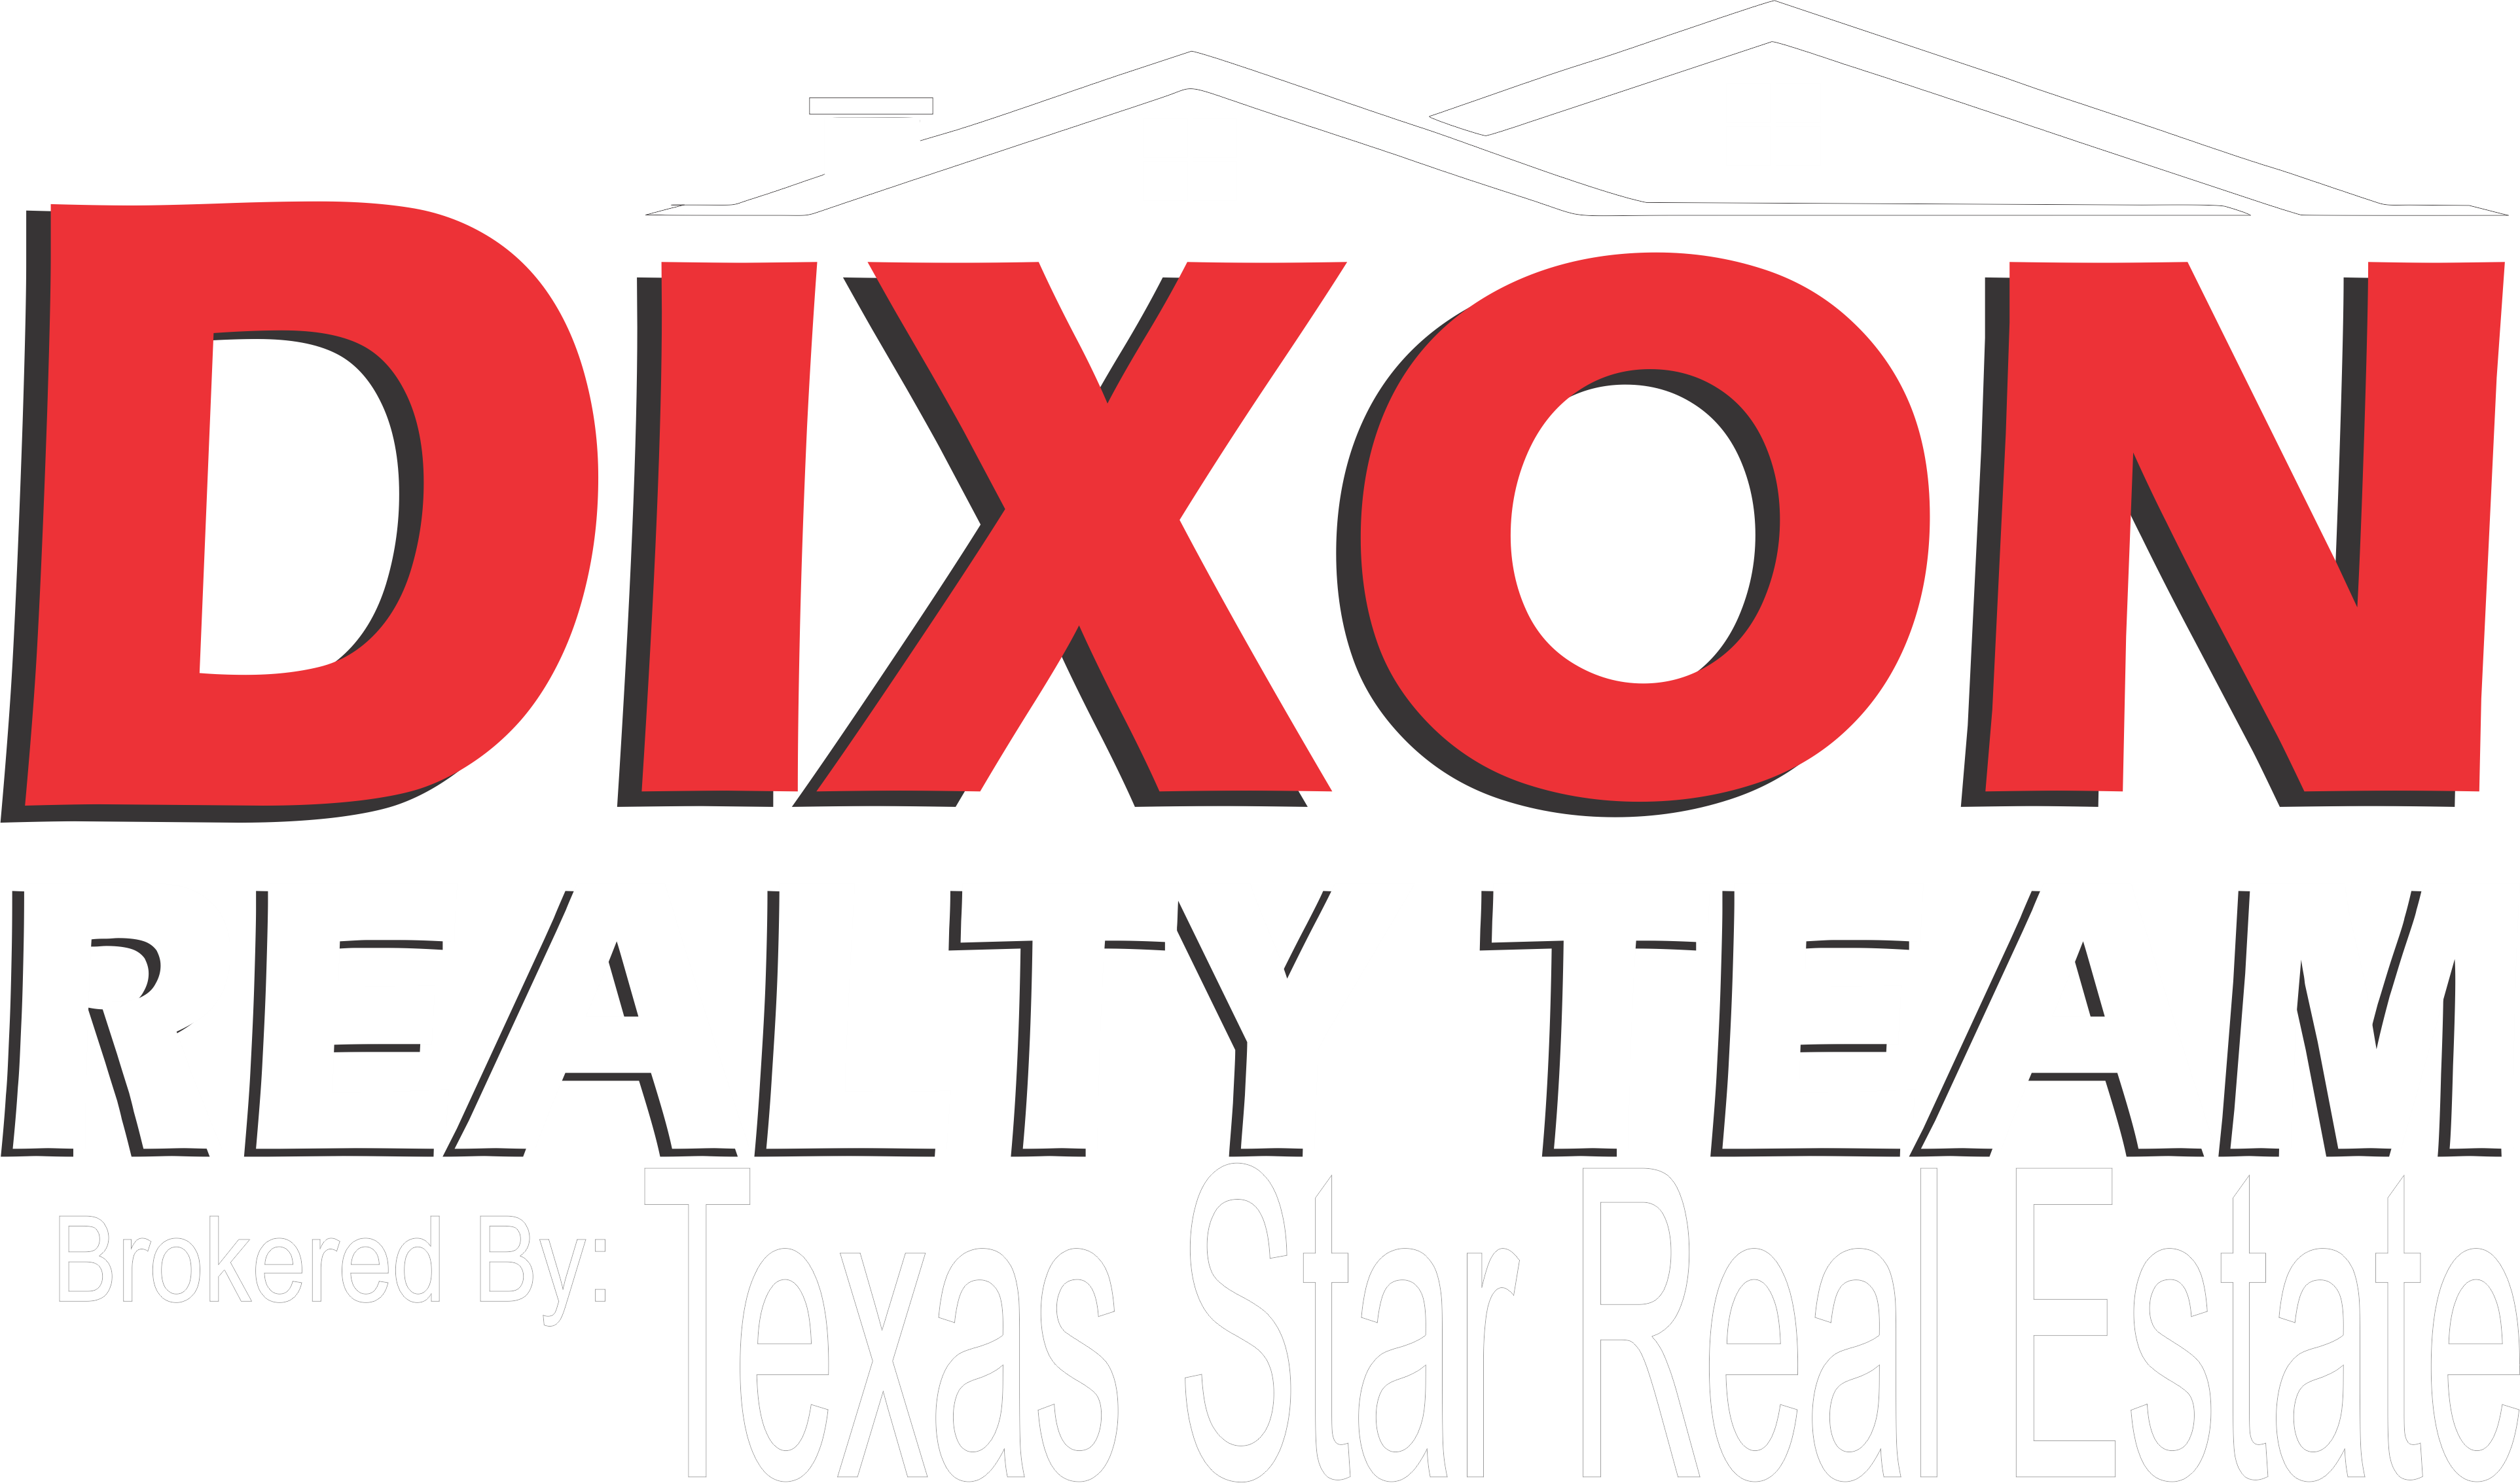 Dixon Realty Team - Buy or Sell with Industry Experts!